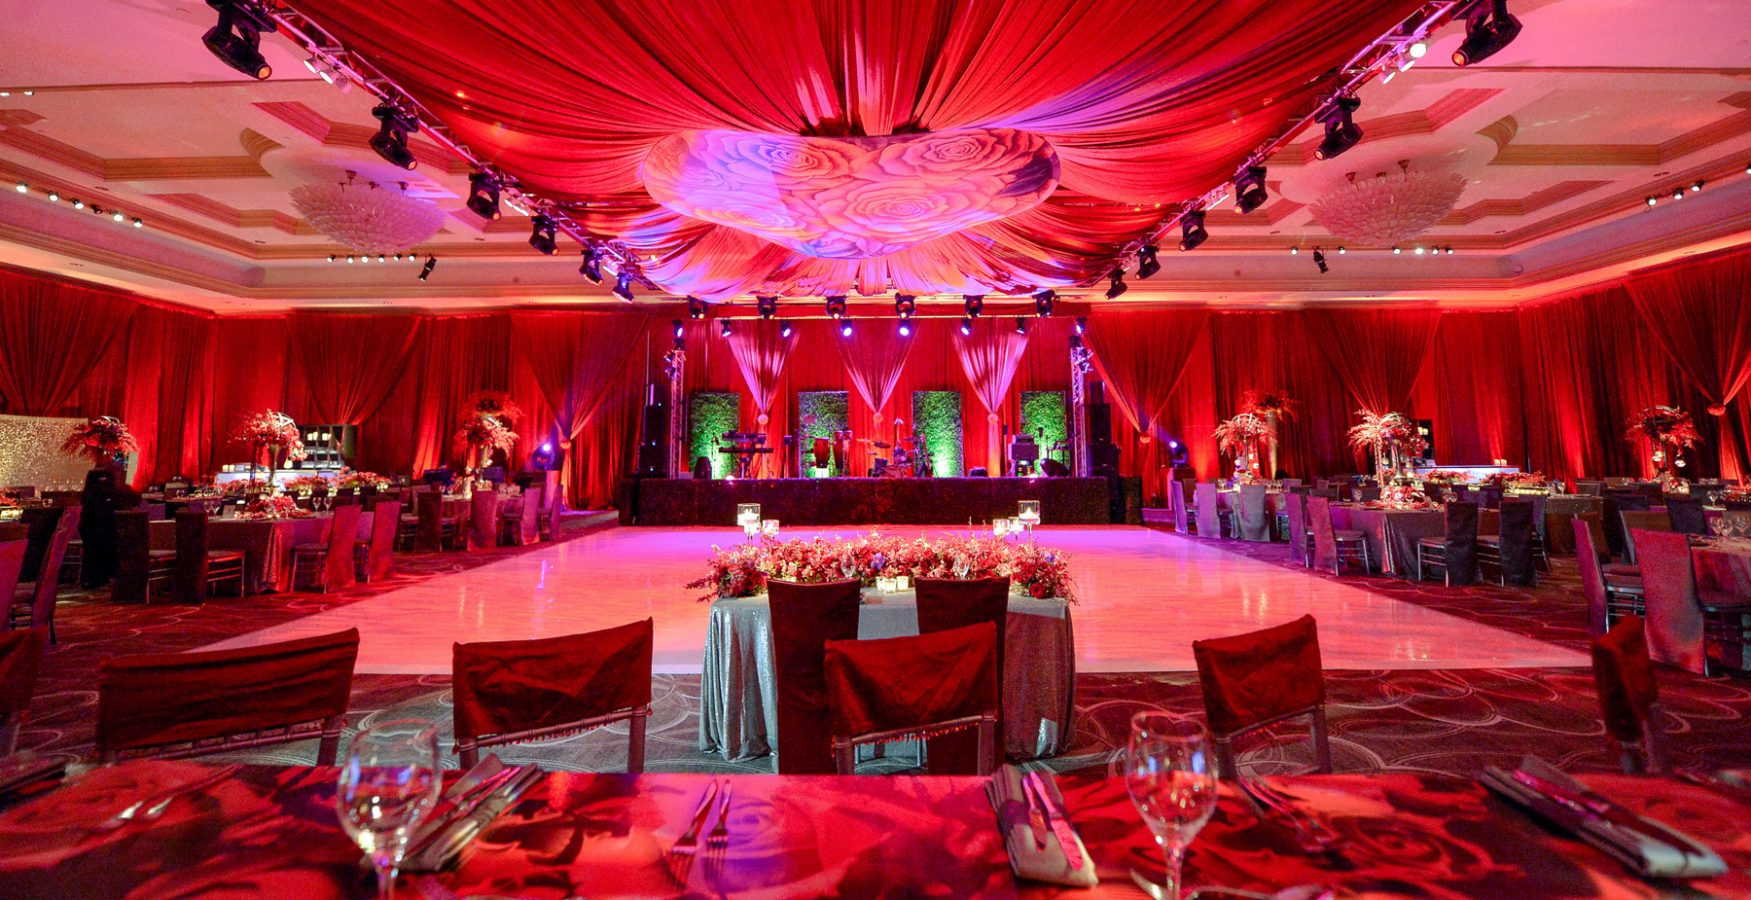 Luxury boutique wedding décor in red